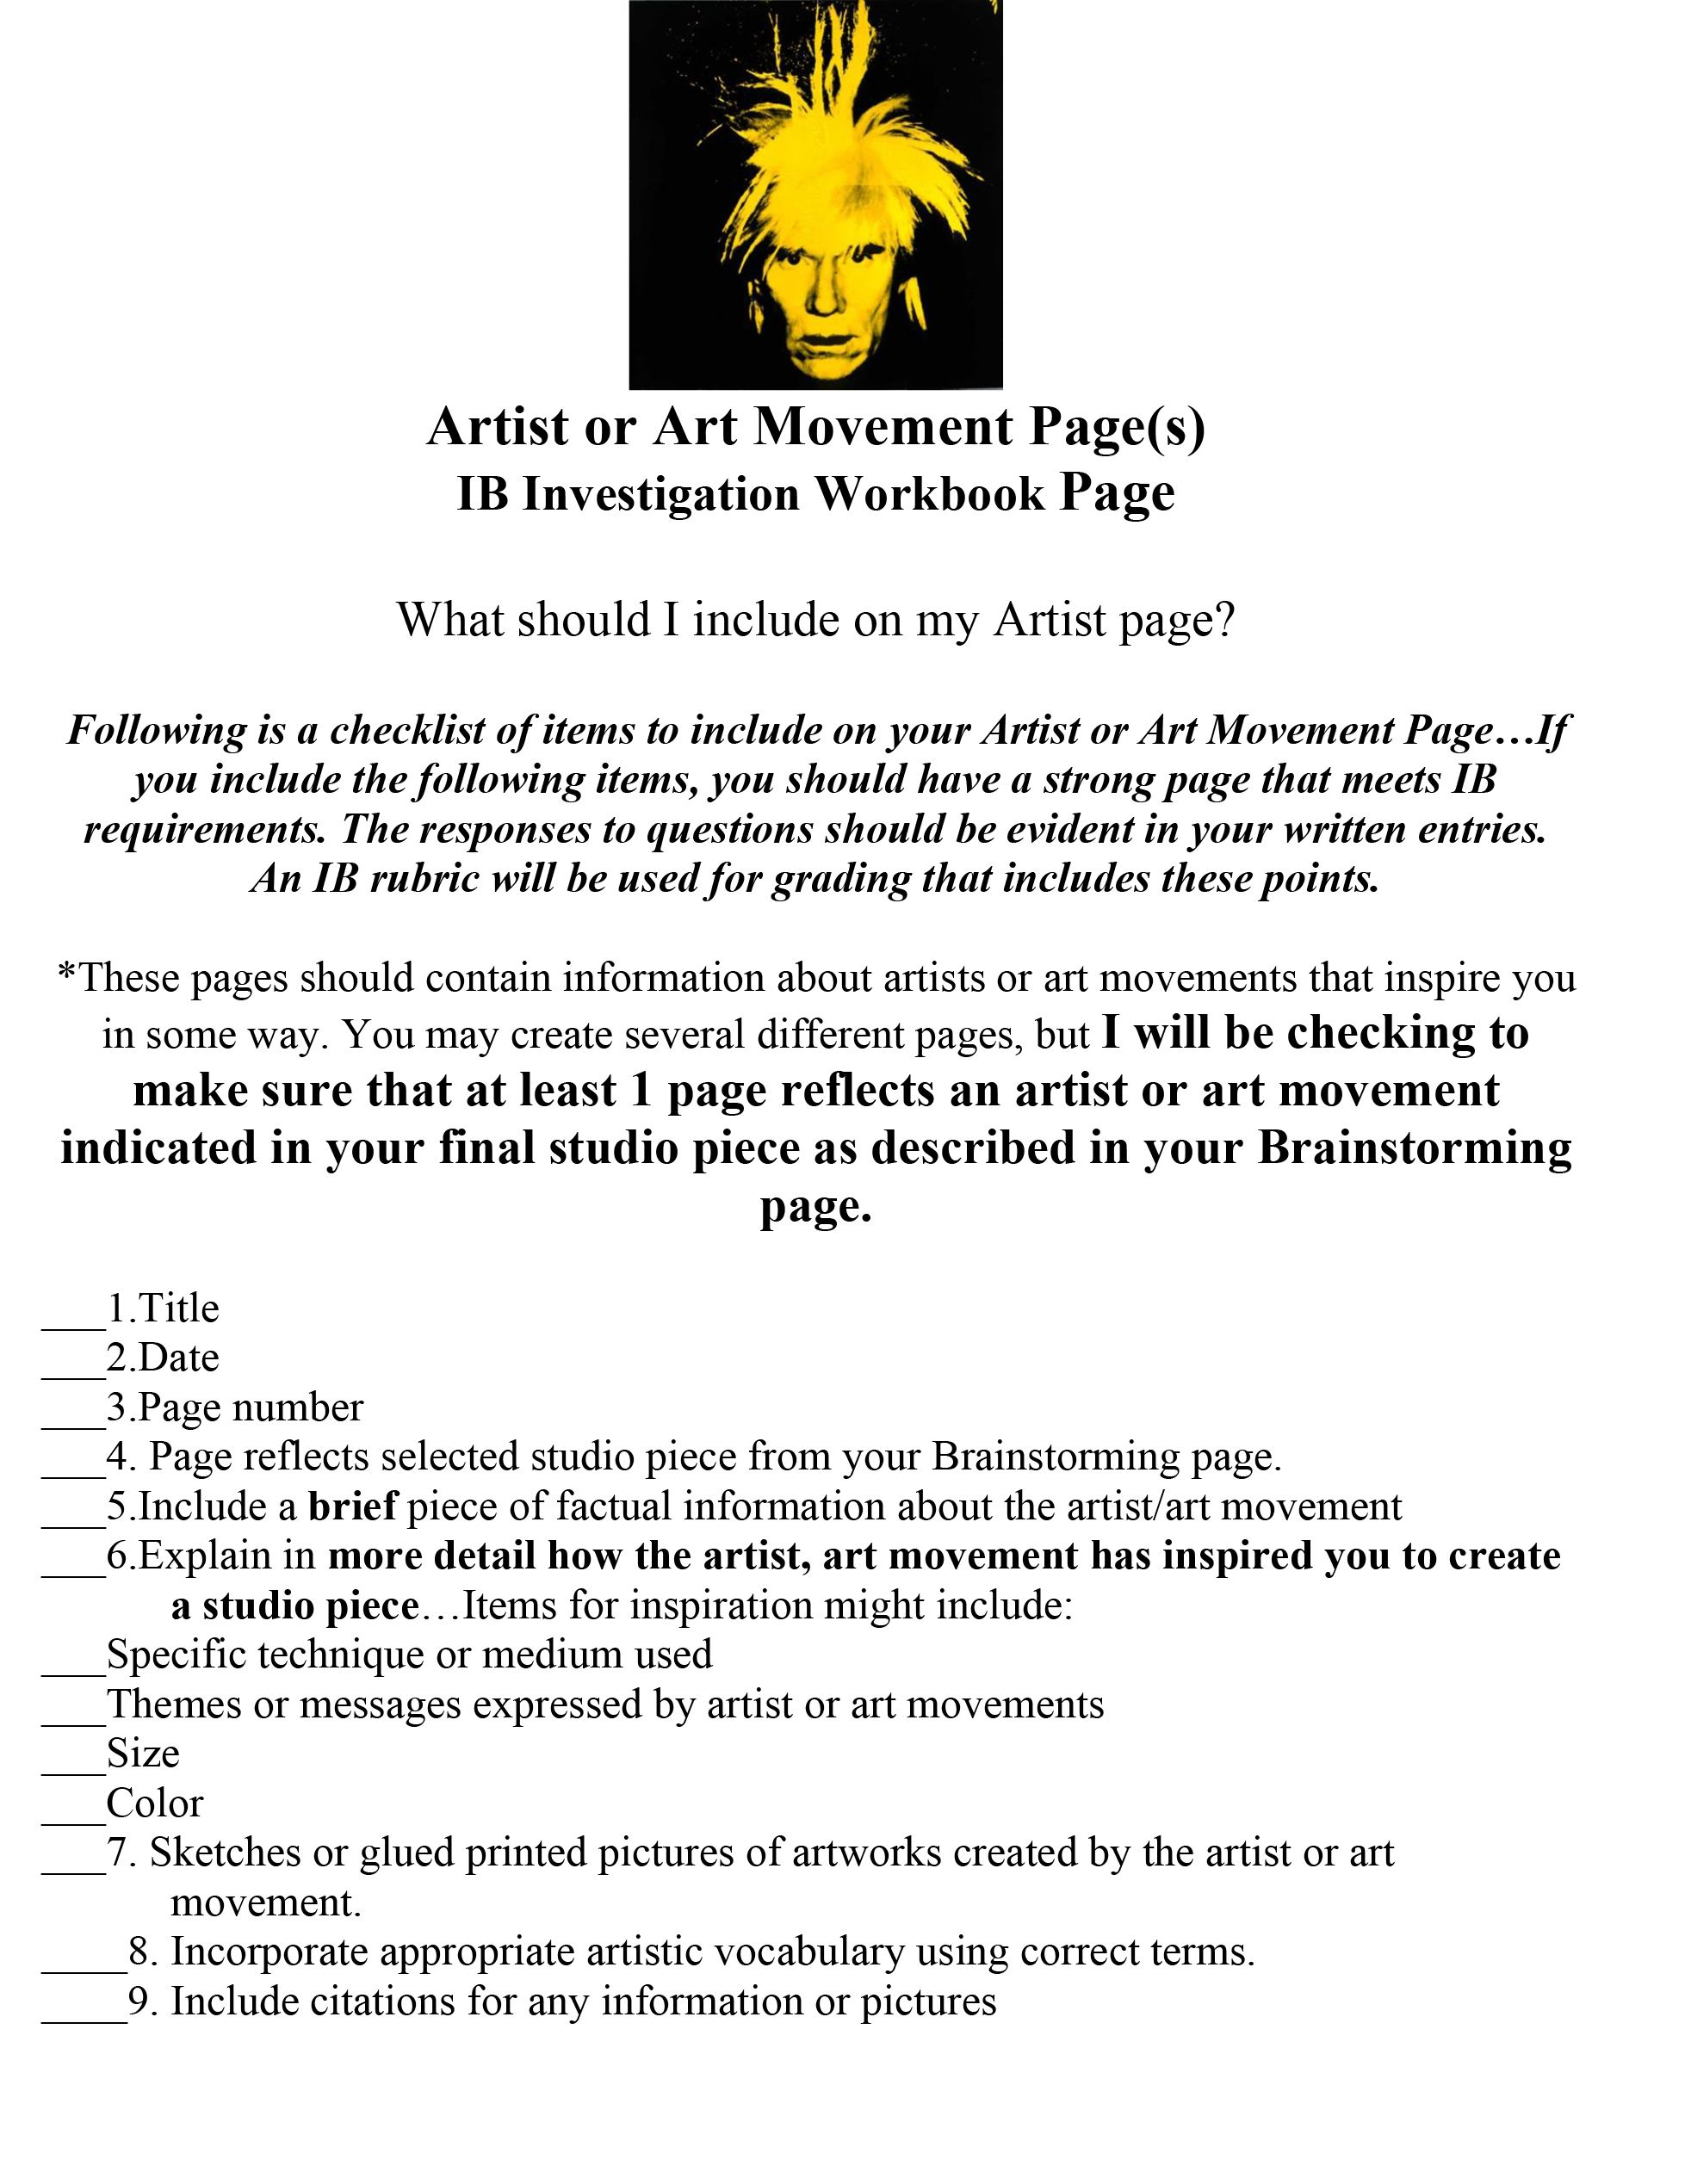 Artist Page Guideline For Iwb